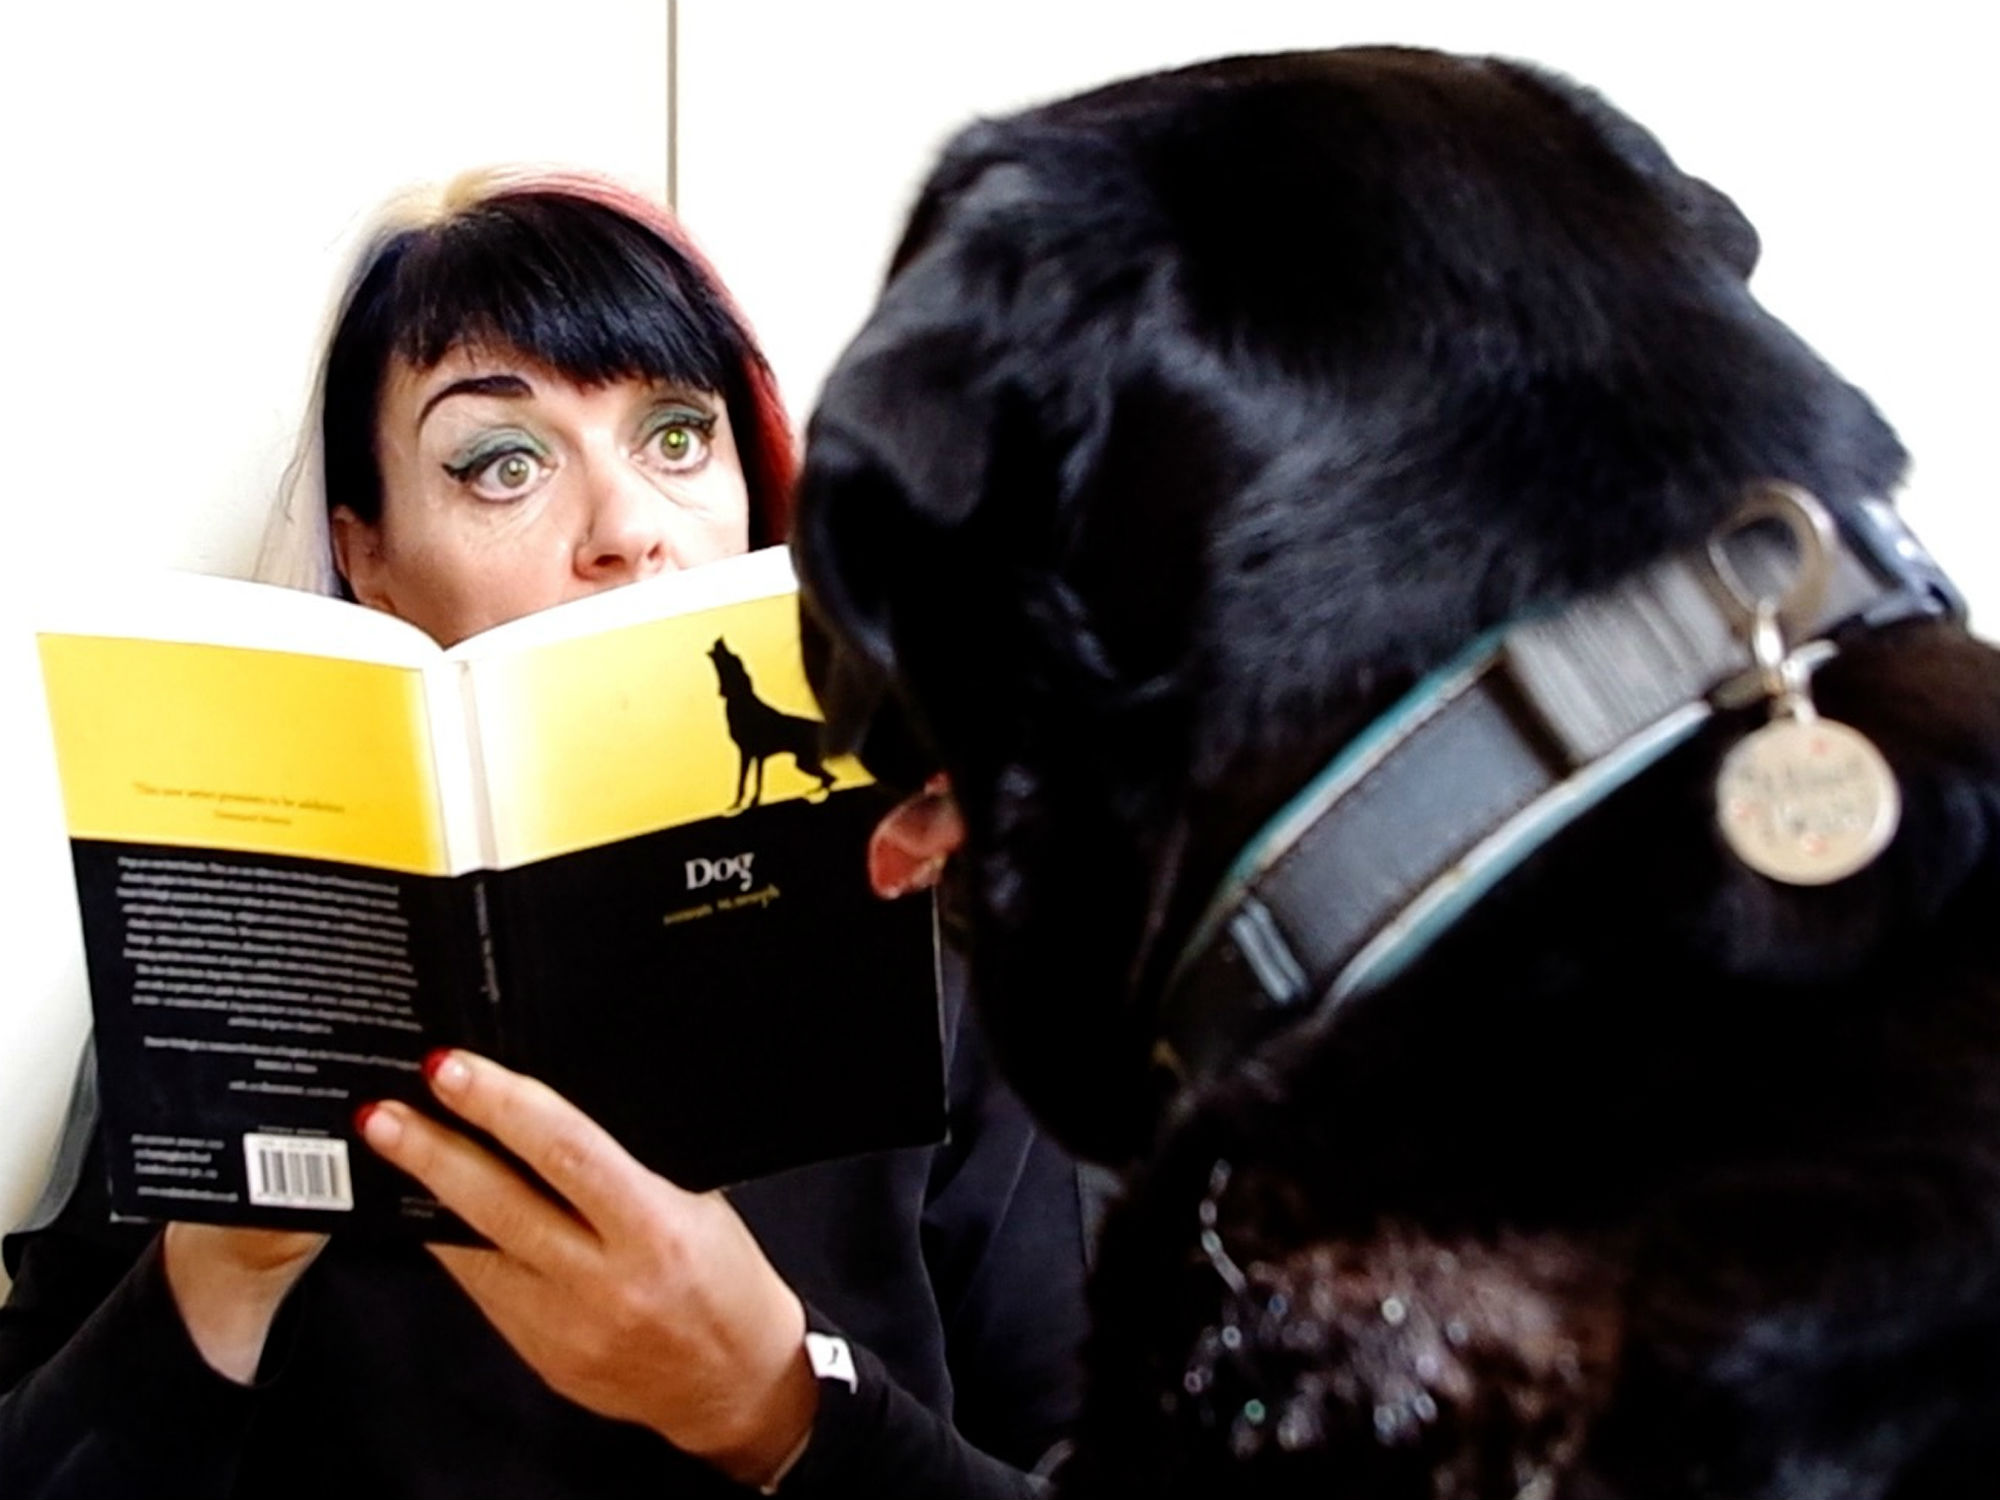 Angela Bartram reads book to dog